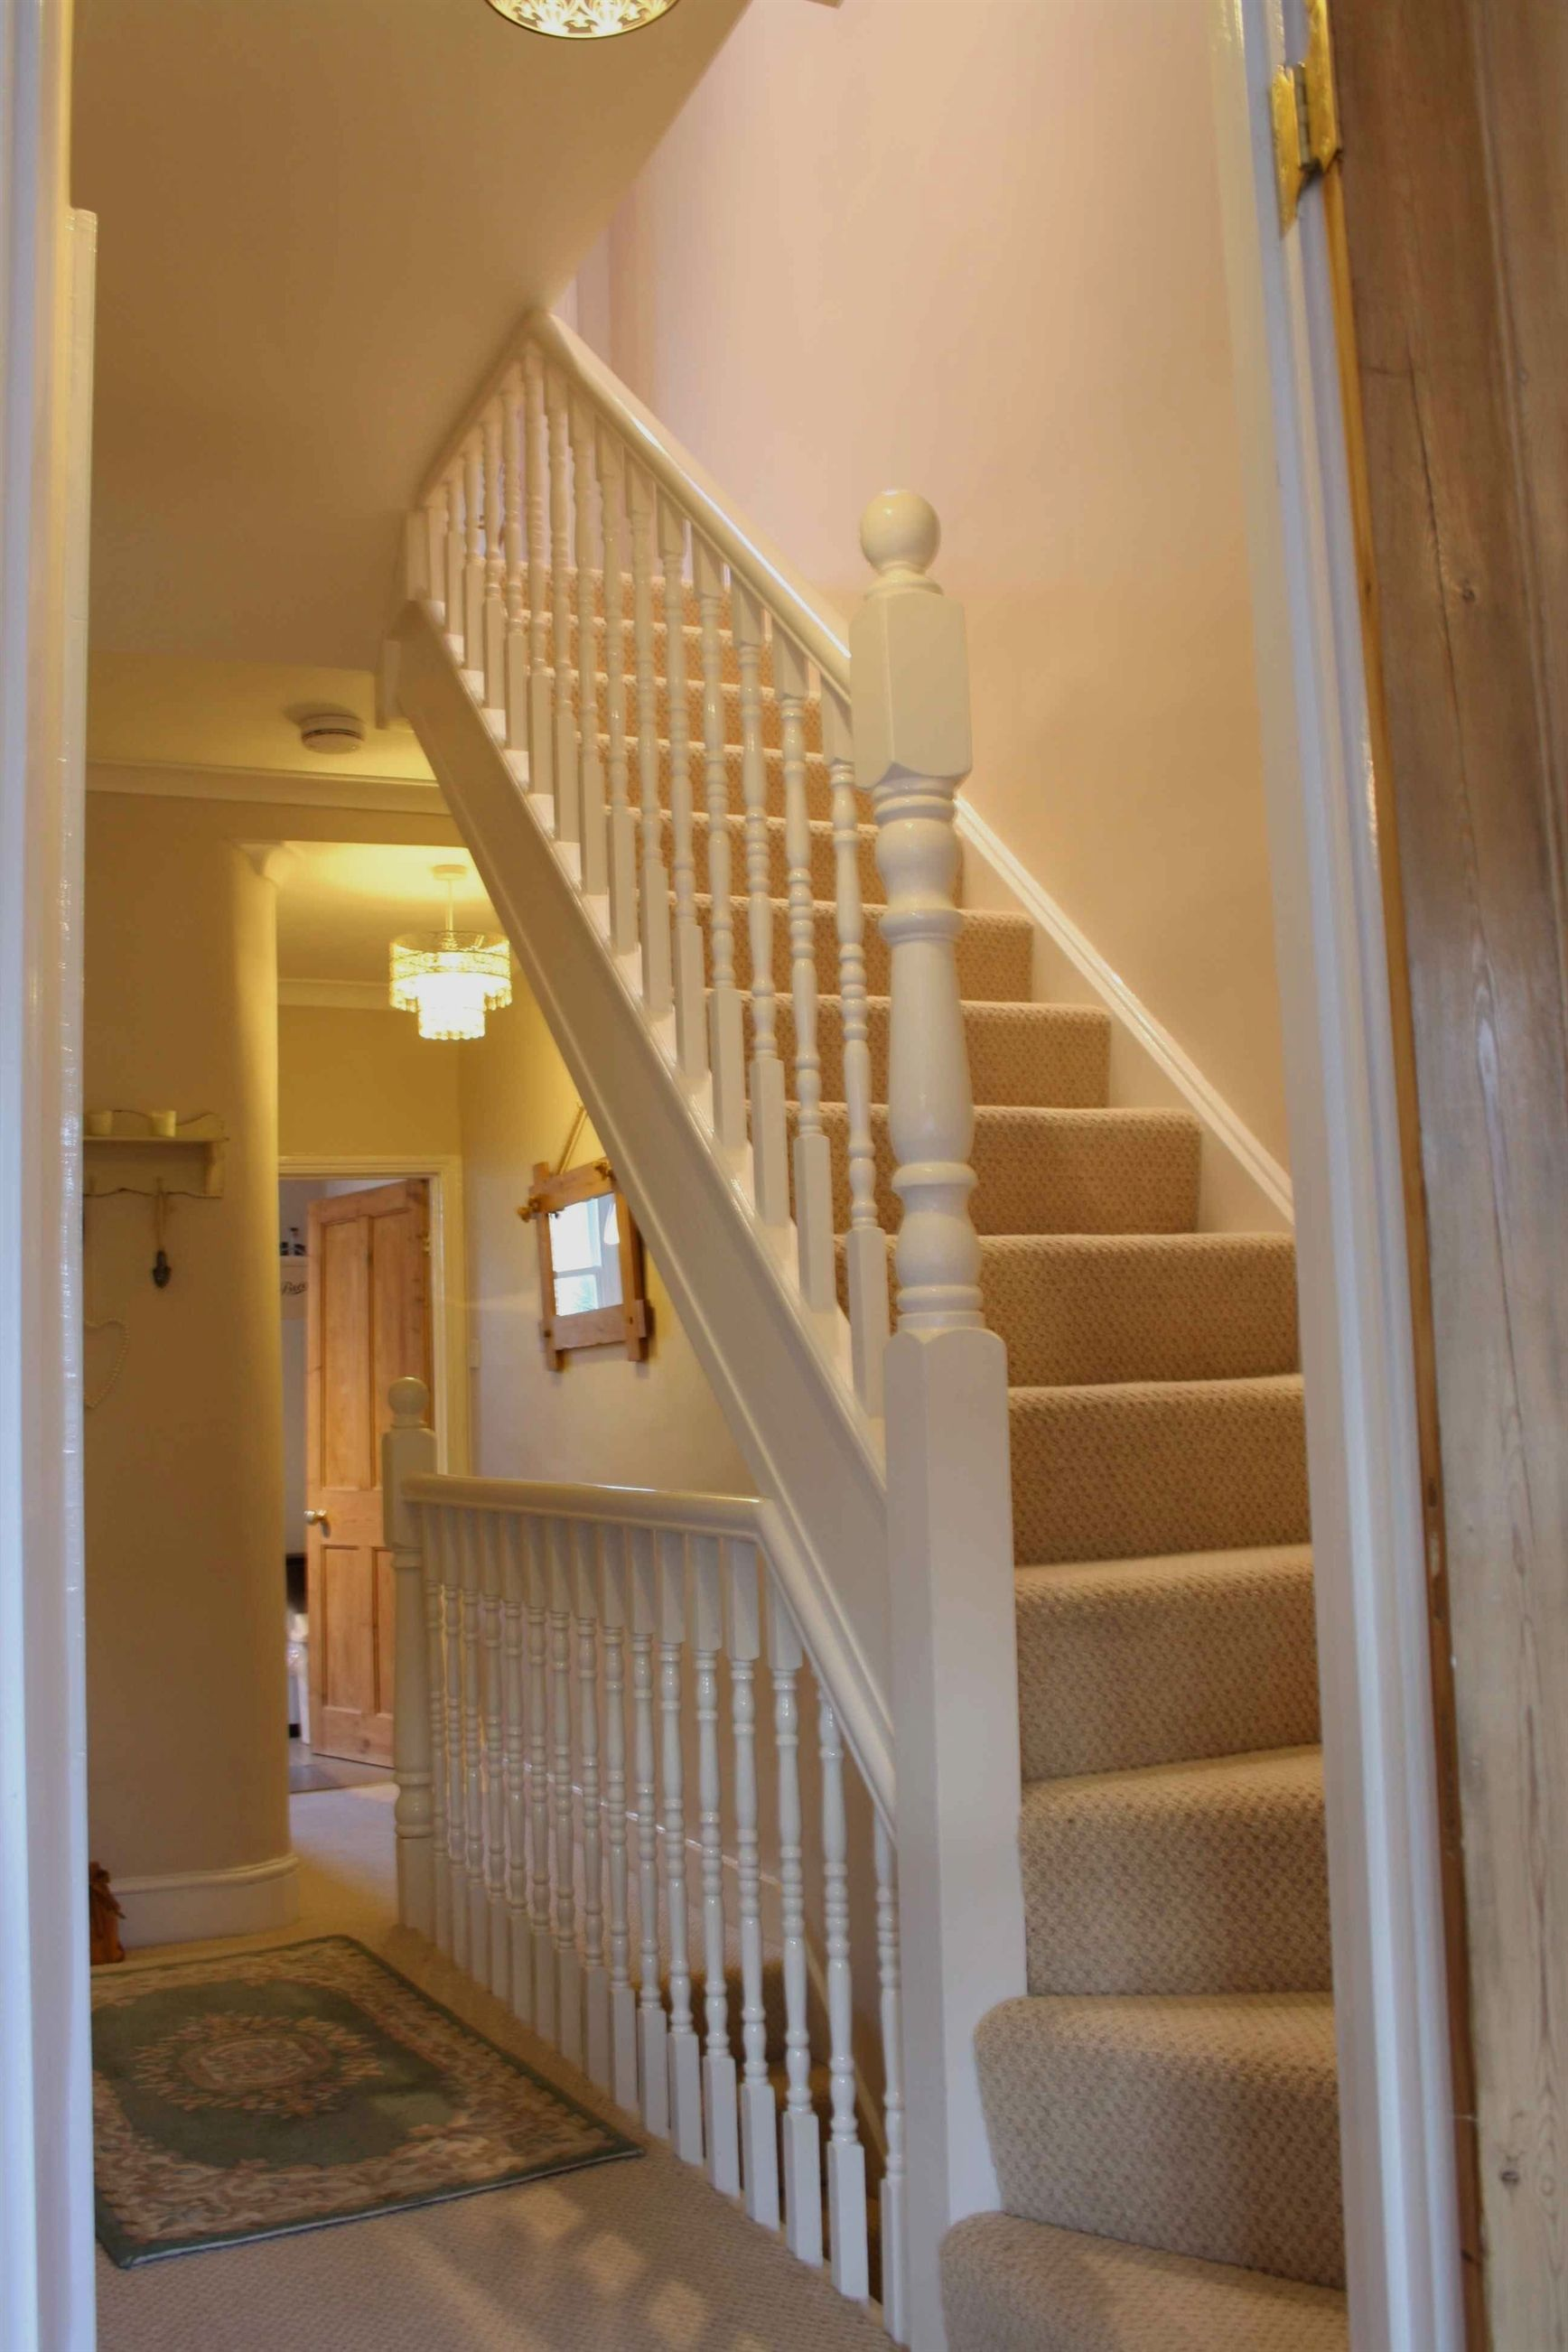 Loft conversion stairs #LoftConversion #loftconversions